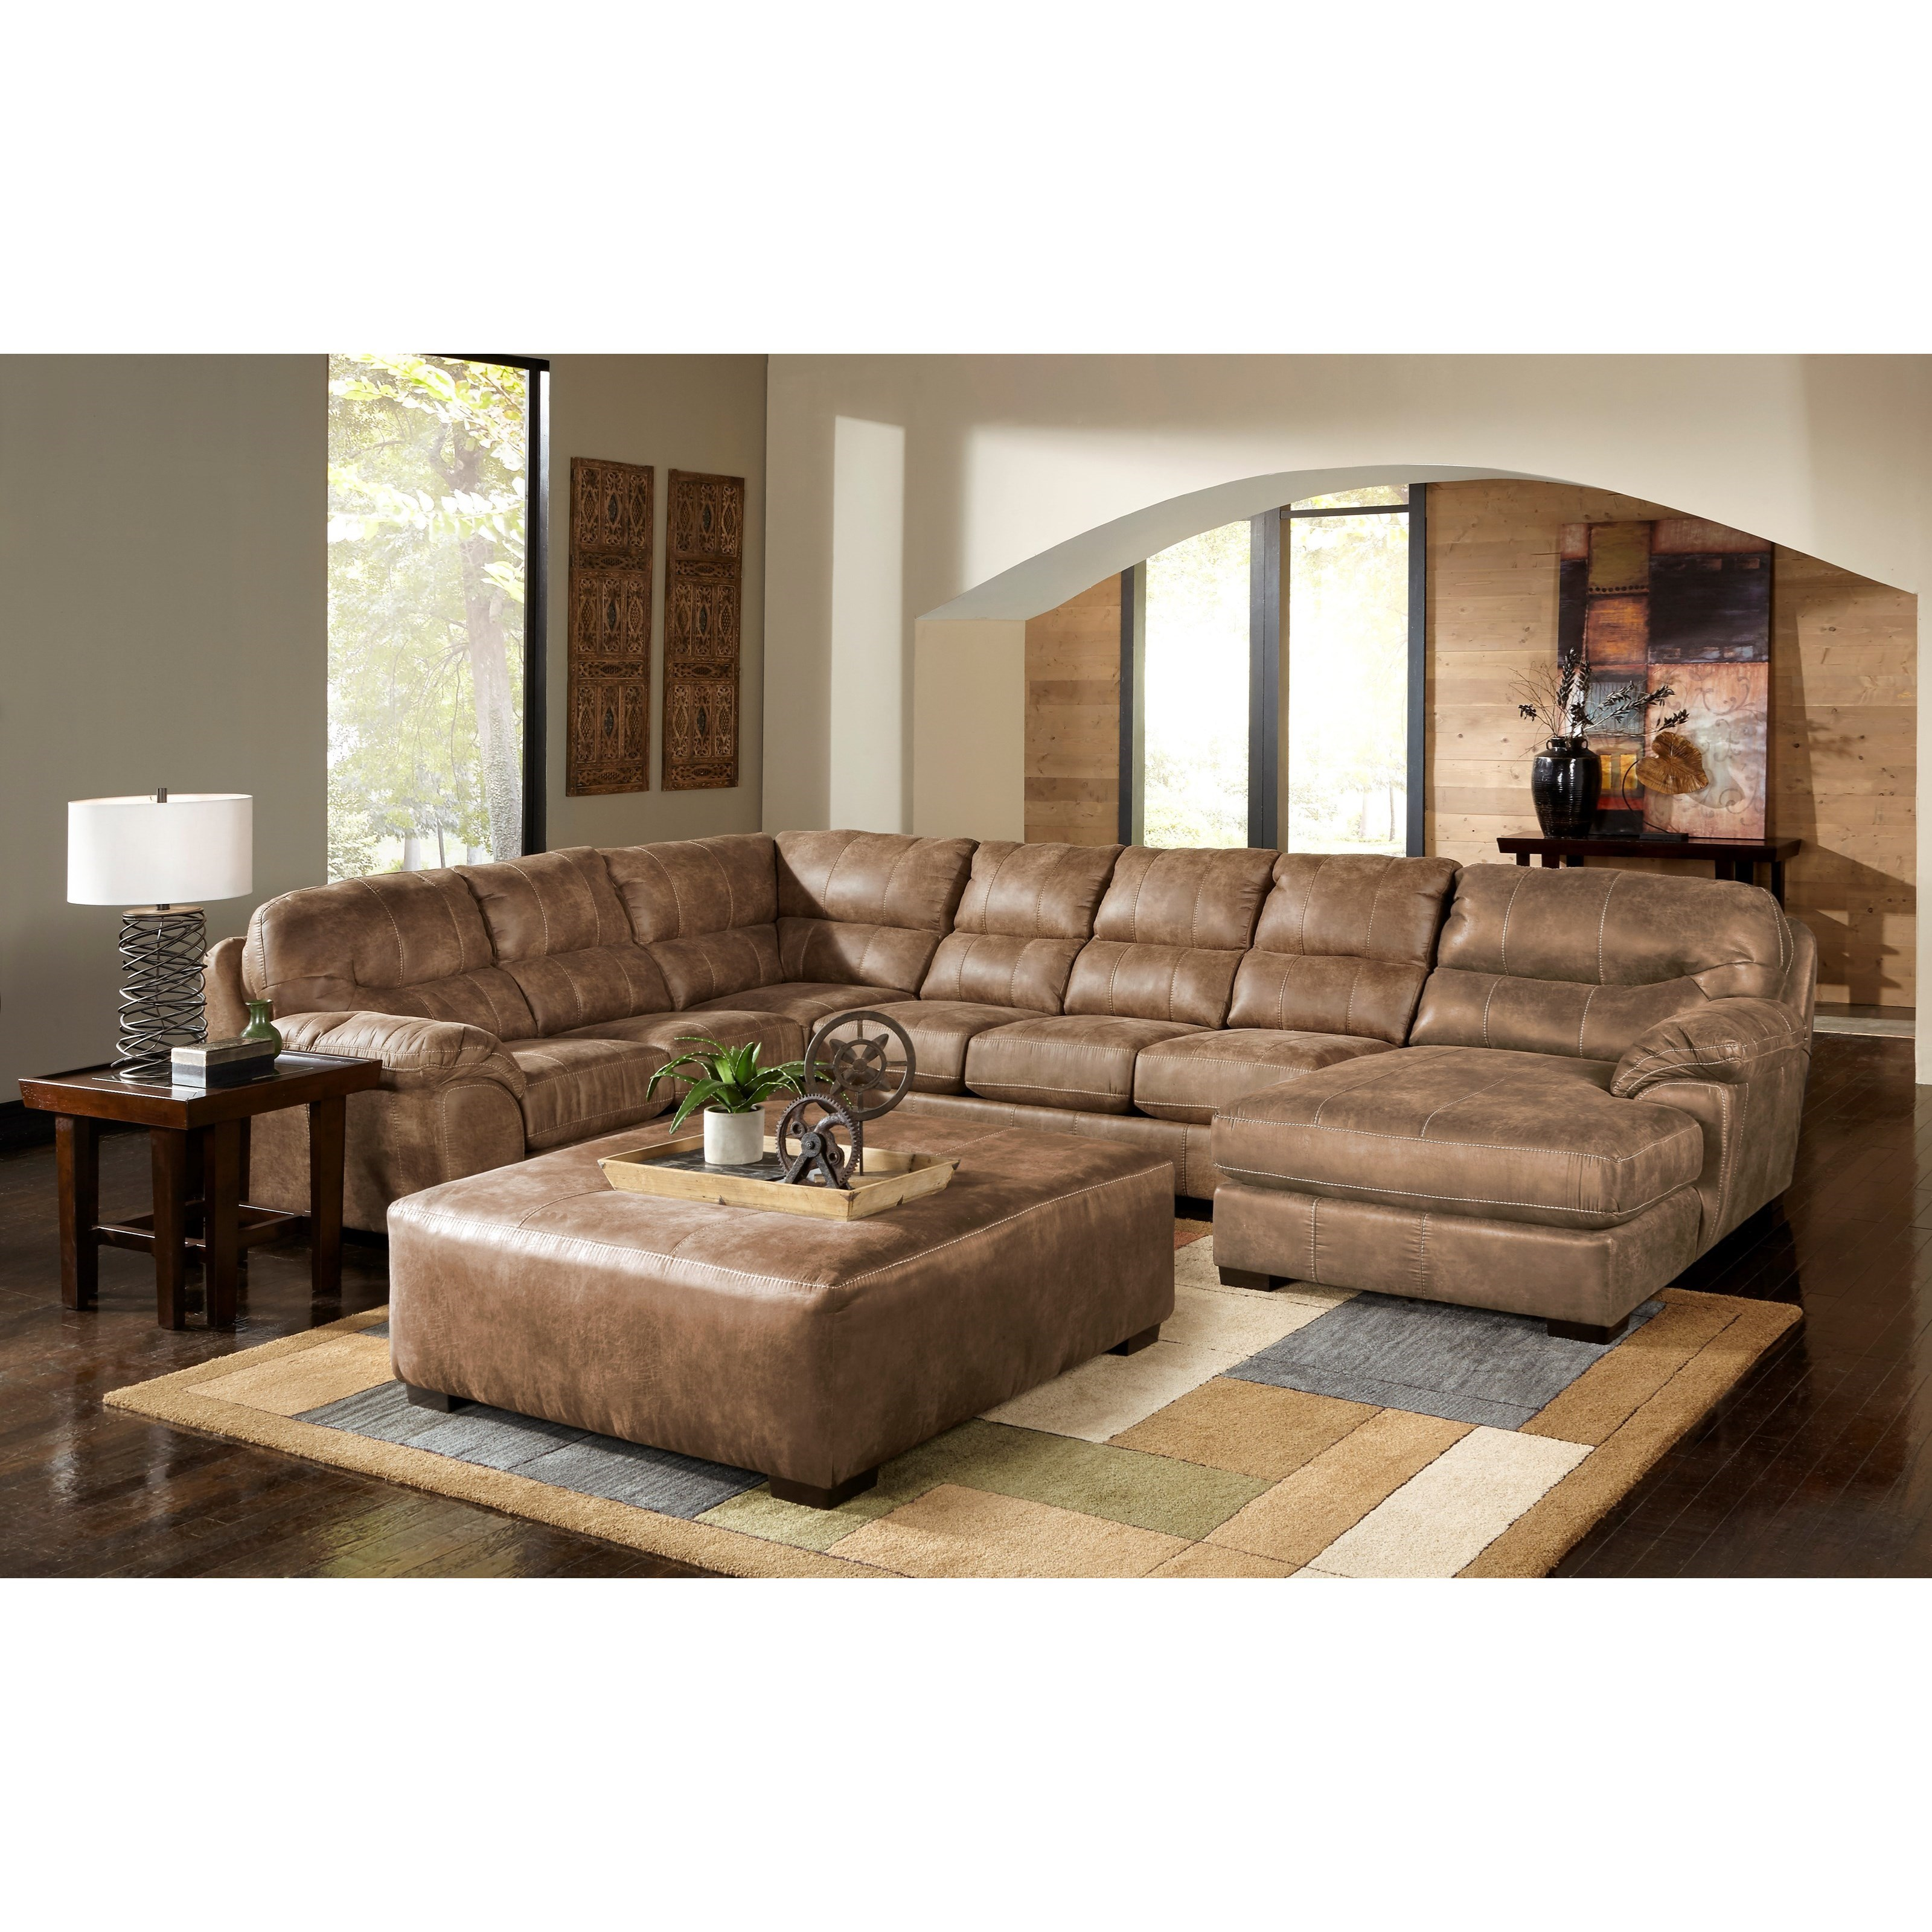 Jackson Furniture Jordan Sectional Sofa